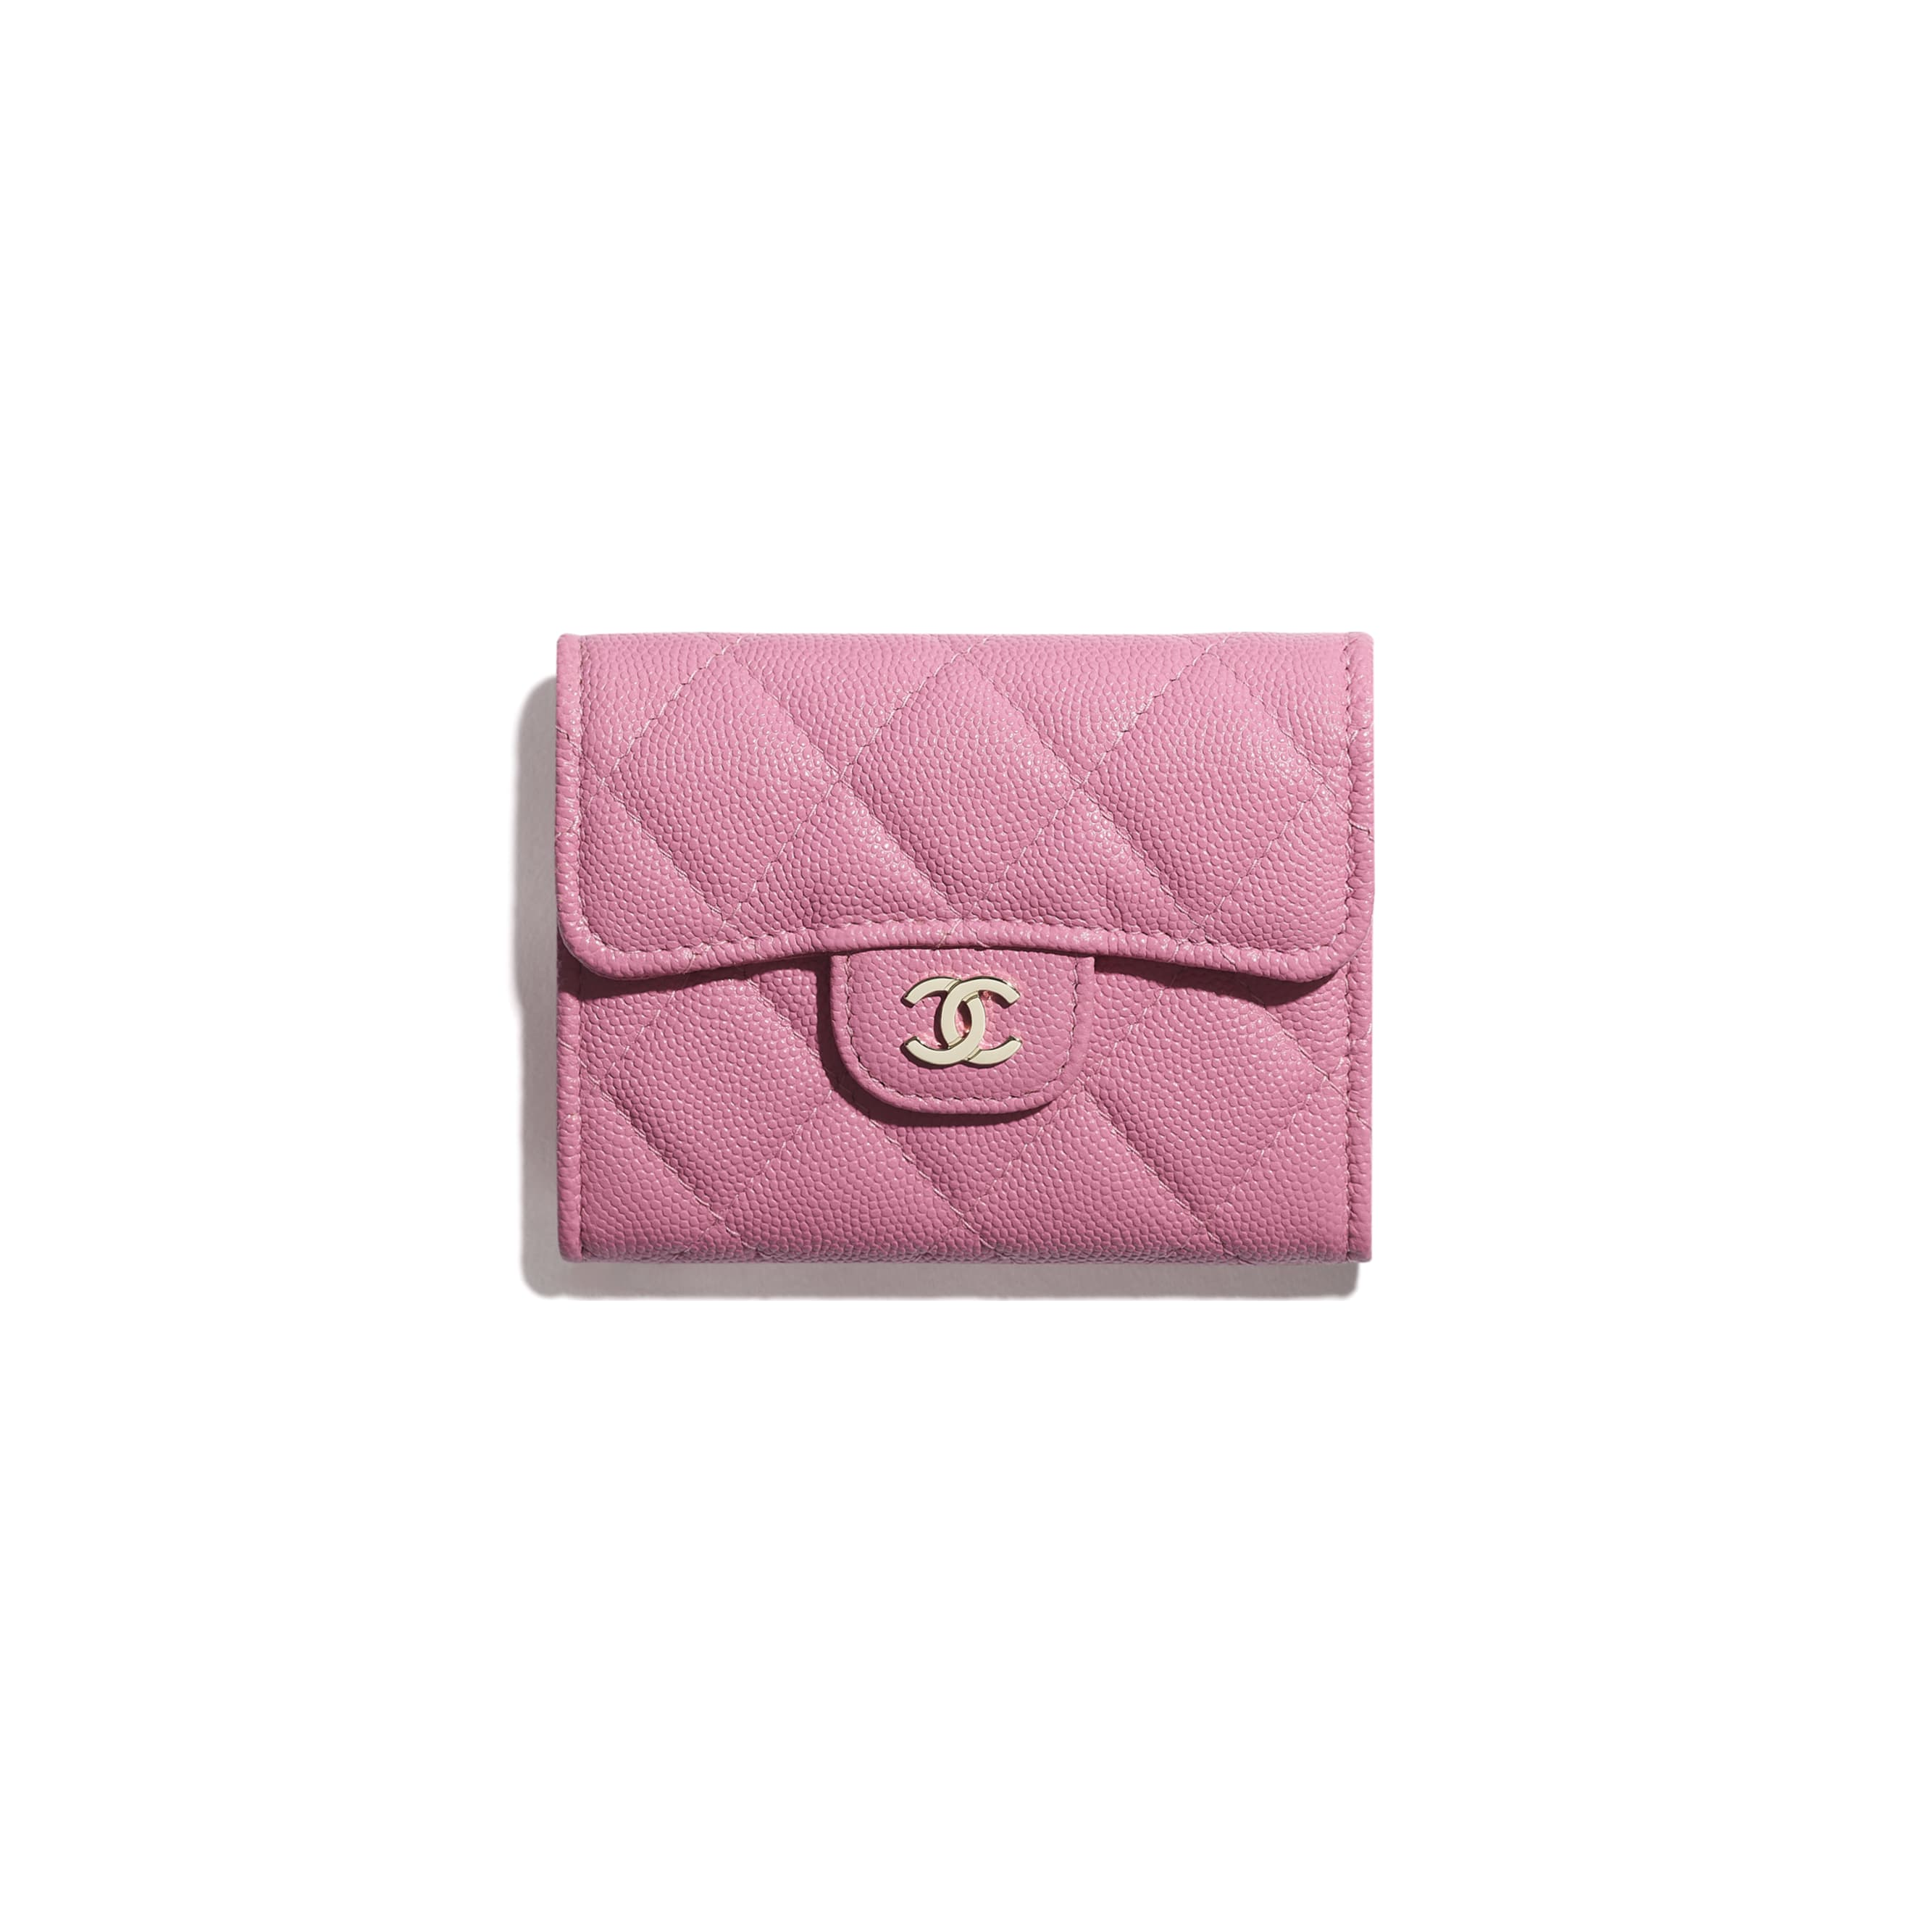 Classic Flap Coin Purse - Pink - Grained Calfskin & Gold-Tone Metal - CHANEL - Default view - see standard sized version